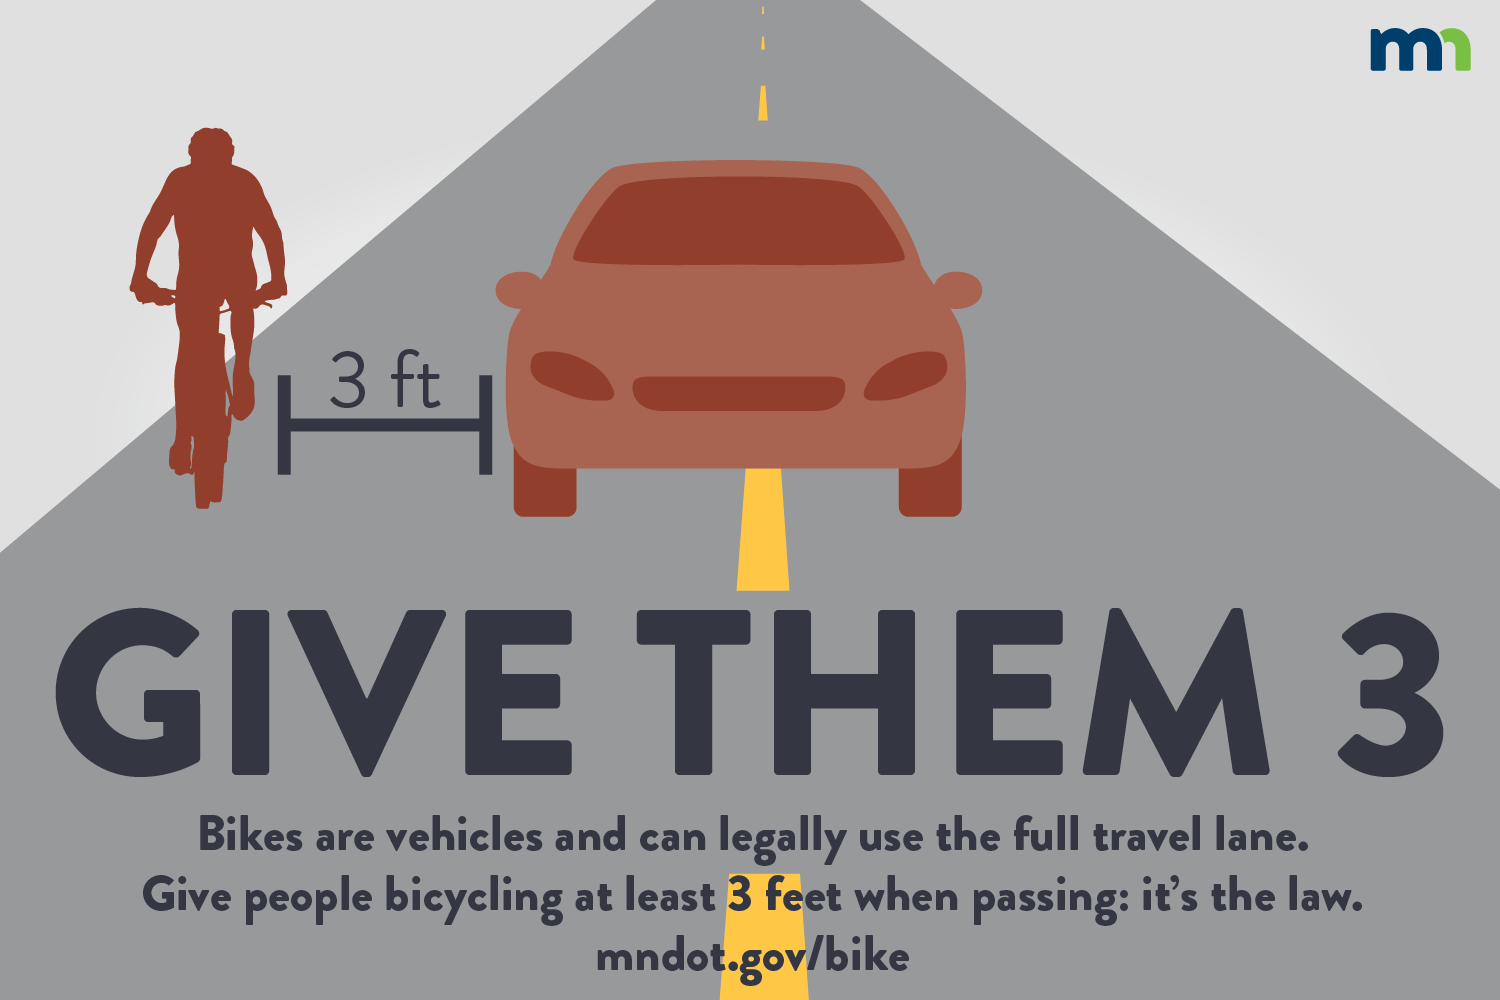 Give them 3: Bikes are vehicles and can legally use the full travel lane. People driving should give people bicycling at least three feet when passing. It is Minnesota law.